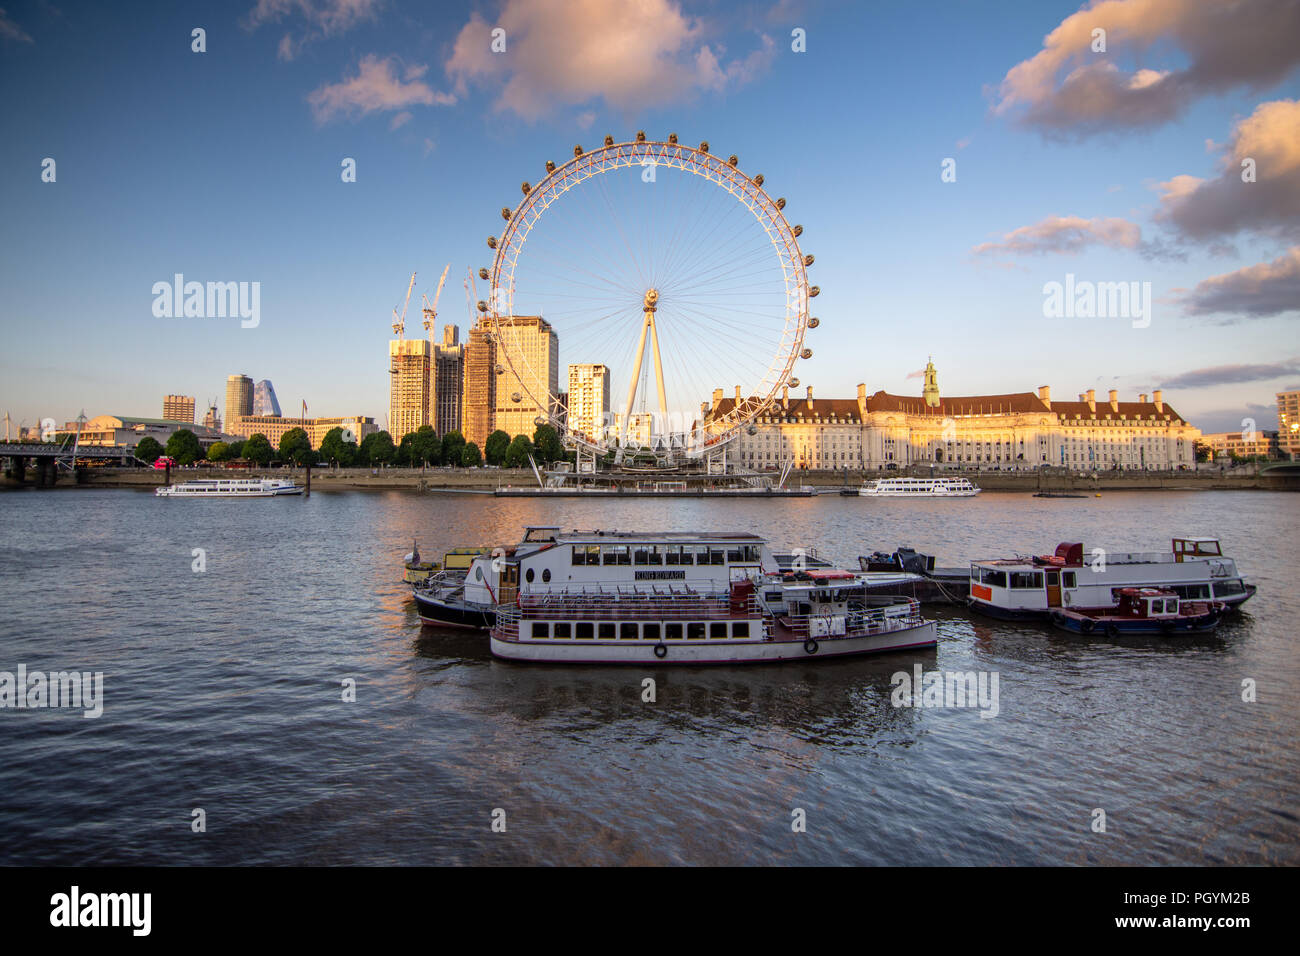 London, England, UK - June 12, 2018: New skyscrapers are under construction at the Shell Centre behind the London Eye observation wheel on the South B - Stock Image